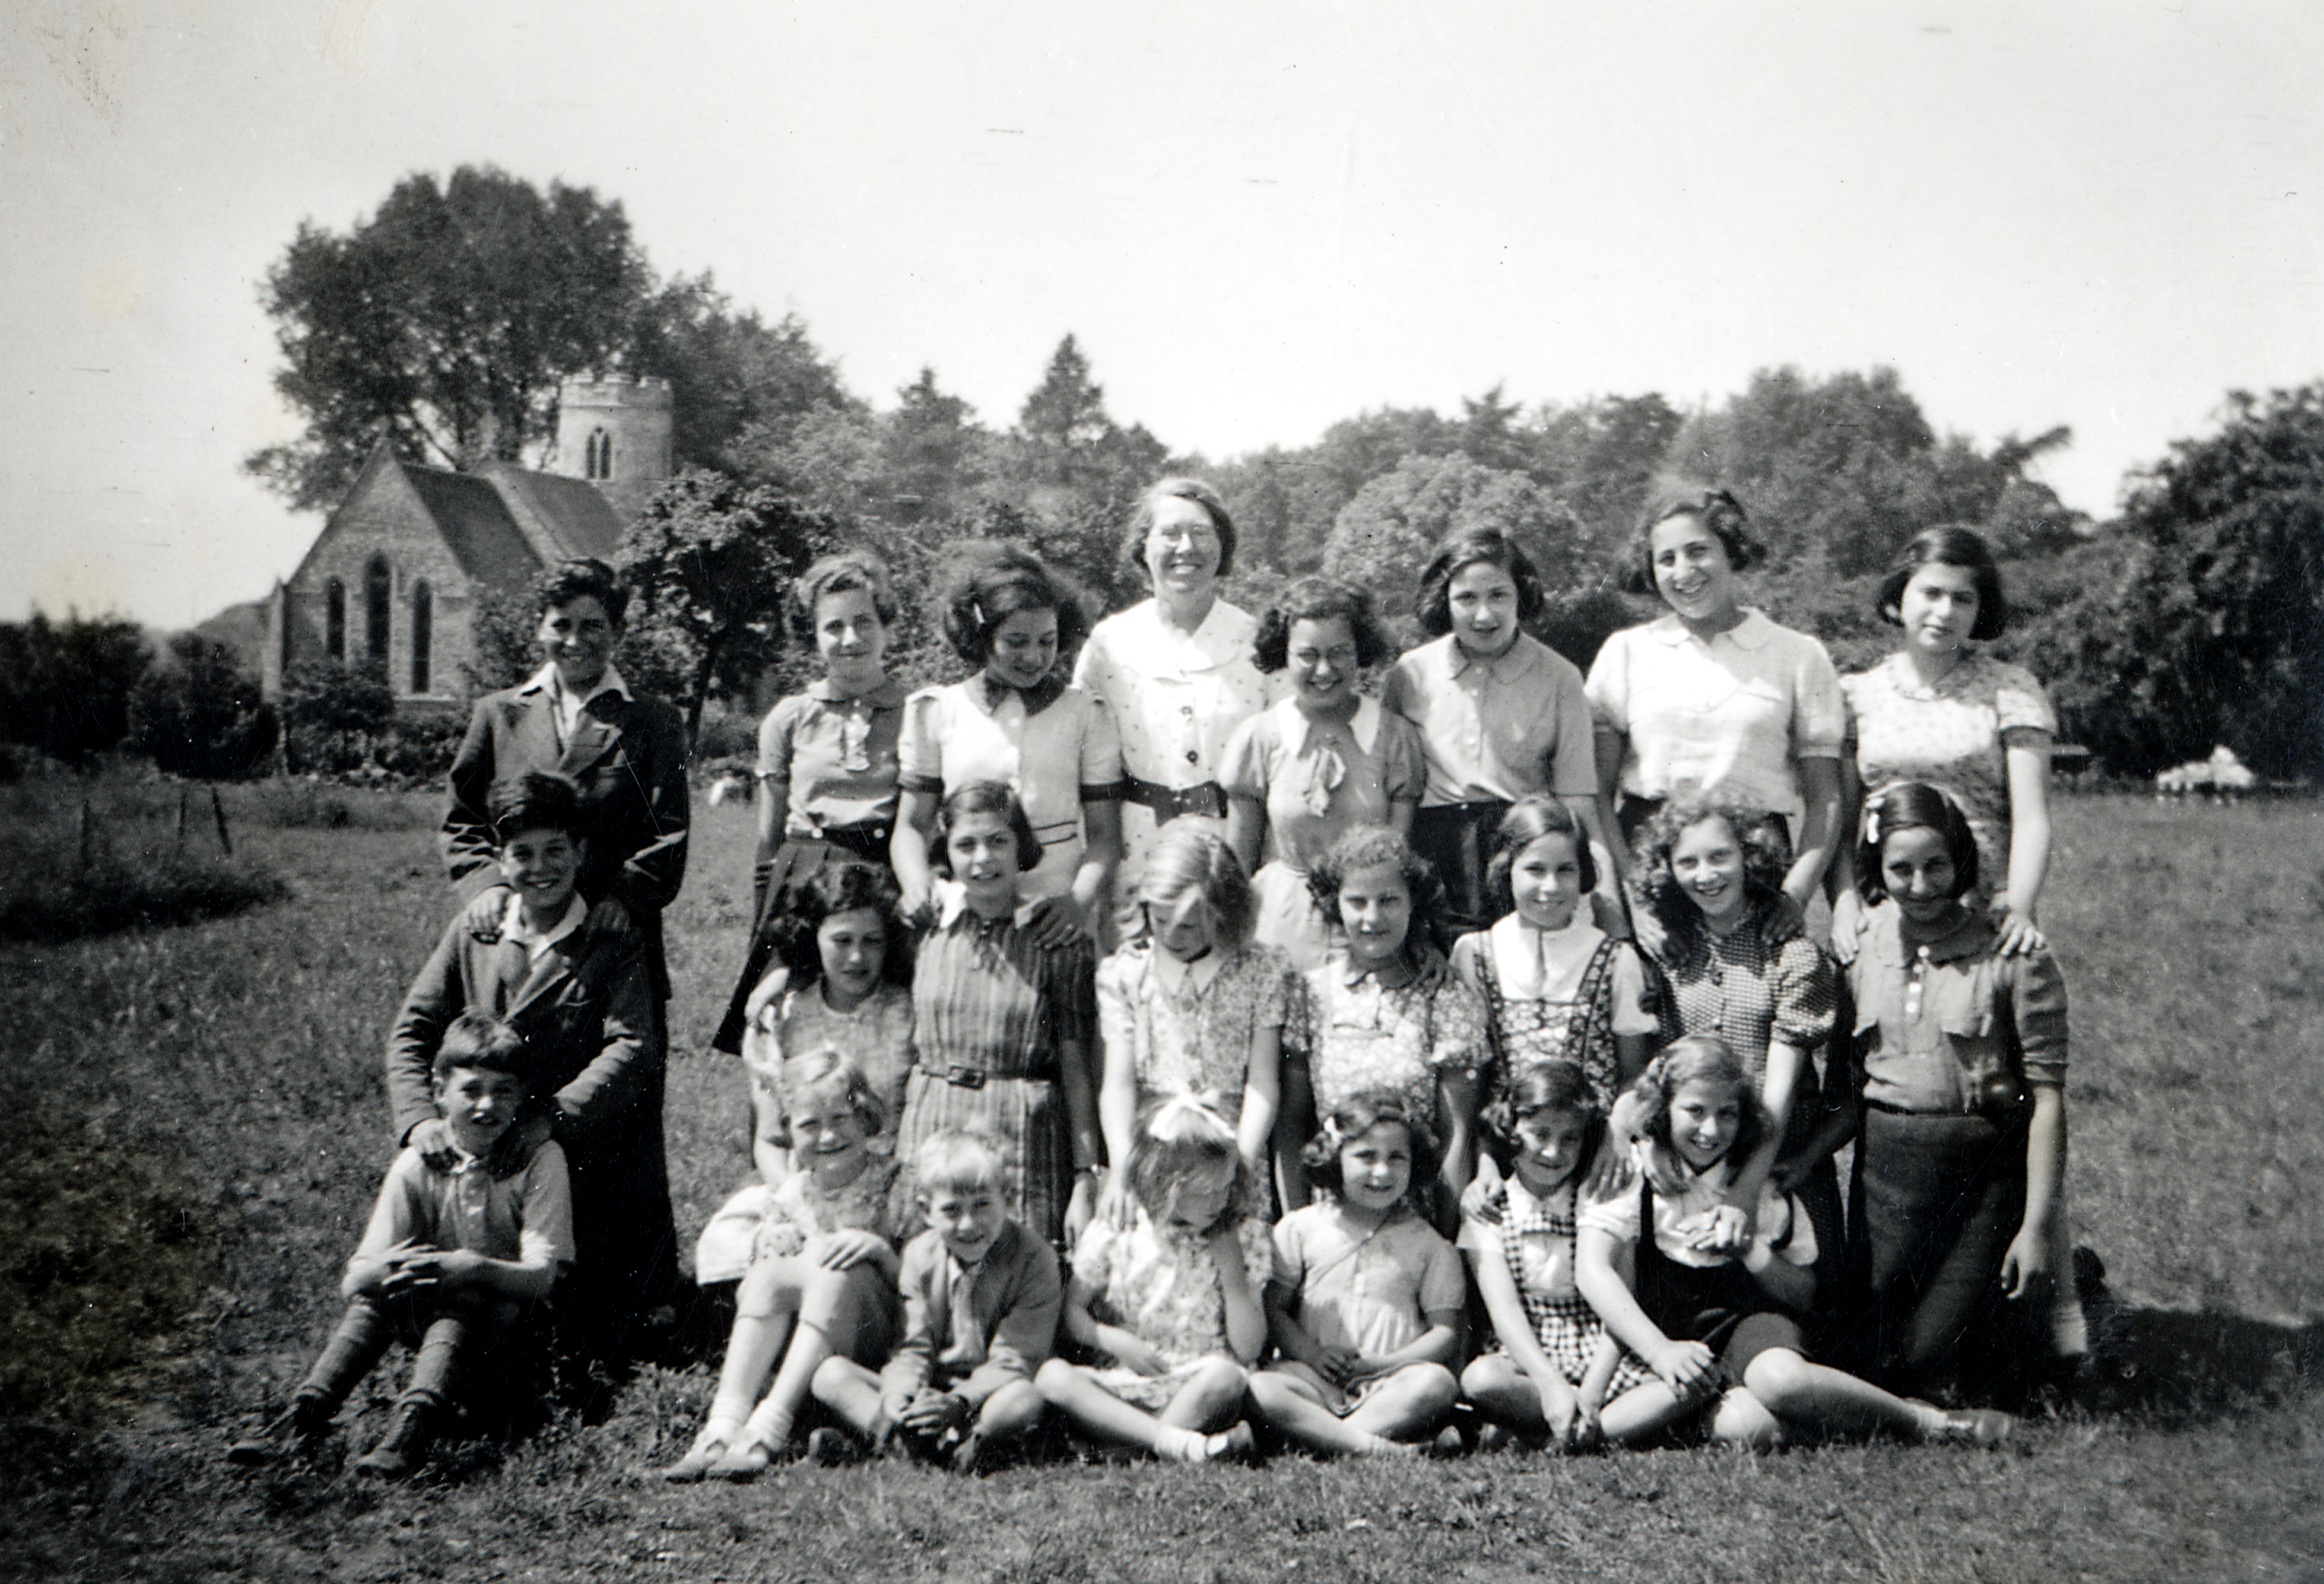 Lilli Tauber and other emigrant children in Cockley Cley, UK